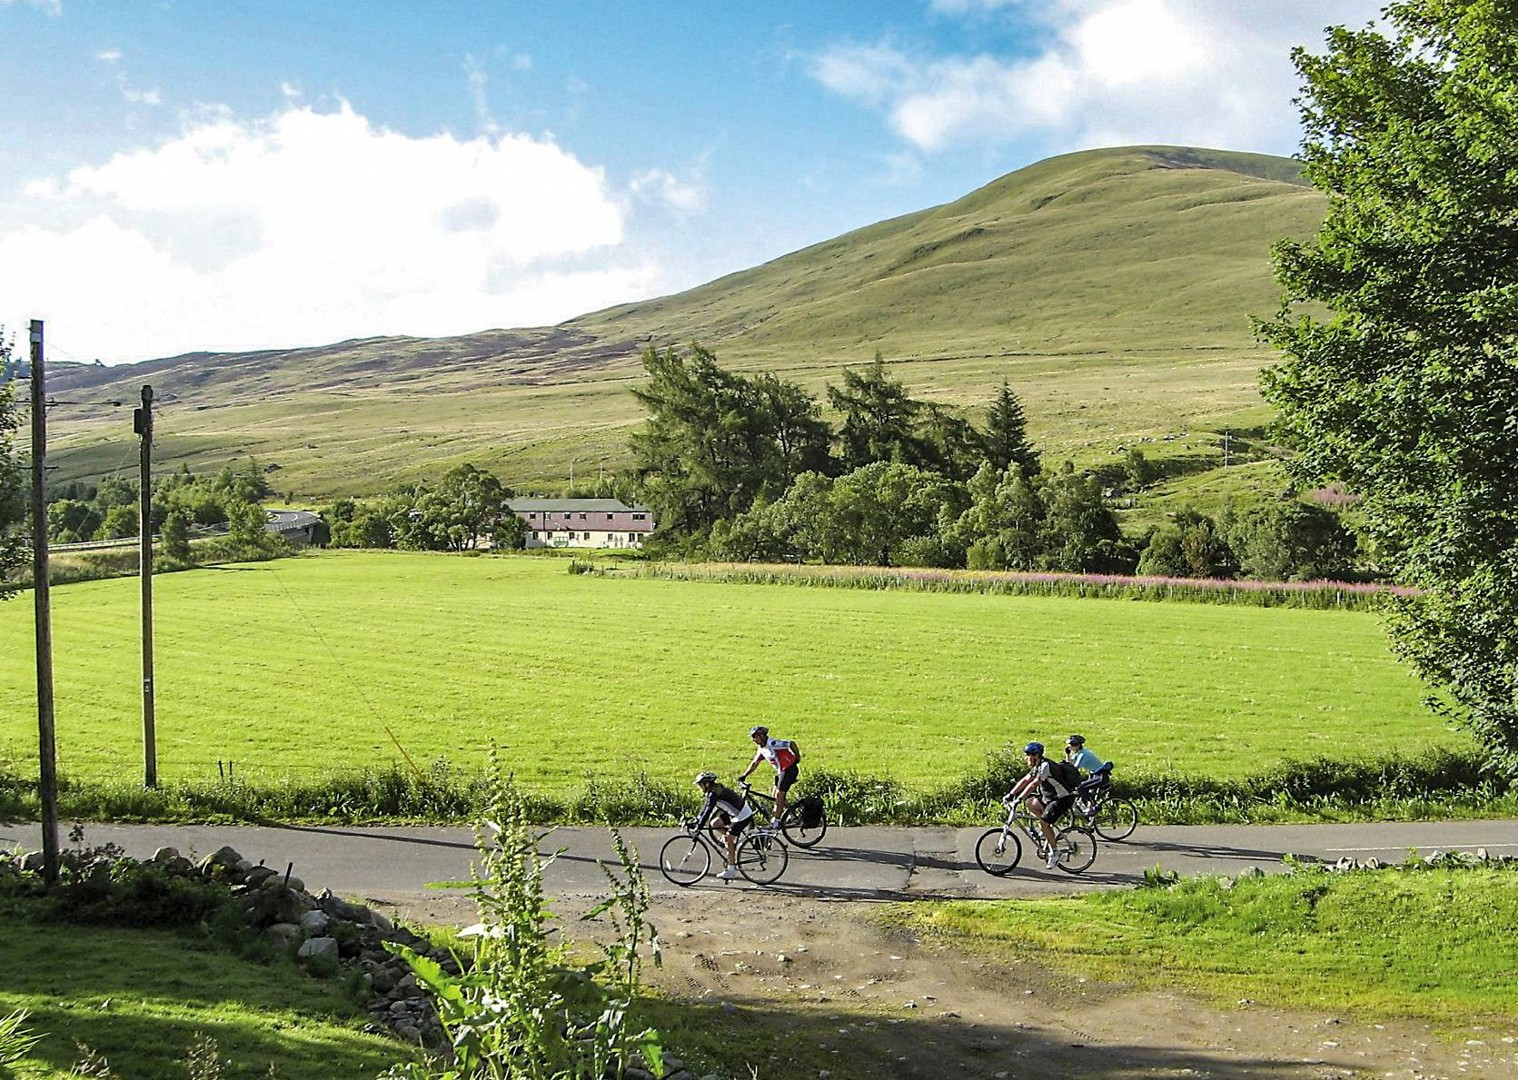 22-day-guided-cycling-lands-end-to-john-ogroats-road-cycling-holiday-in-uk.jpg - UK - Land's End to John O'Groats Explorer (22 days) - Guided Cycling Holiday - Leisure Cycling